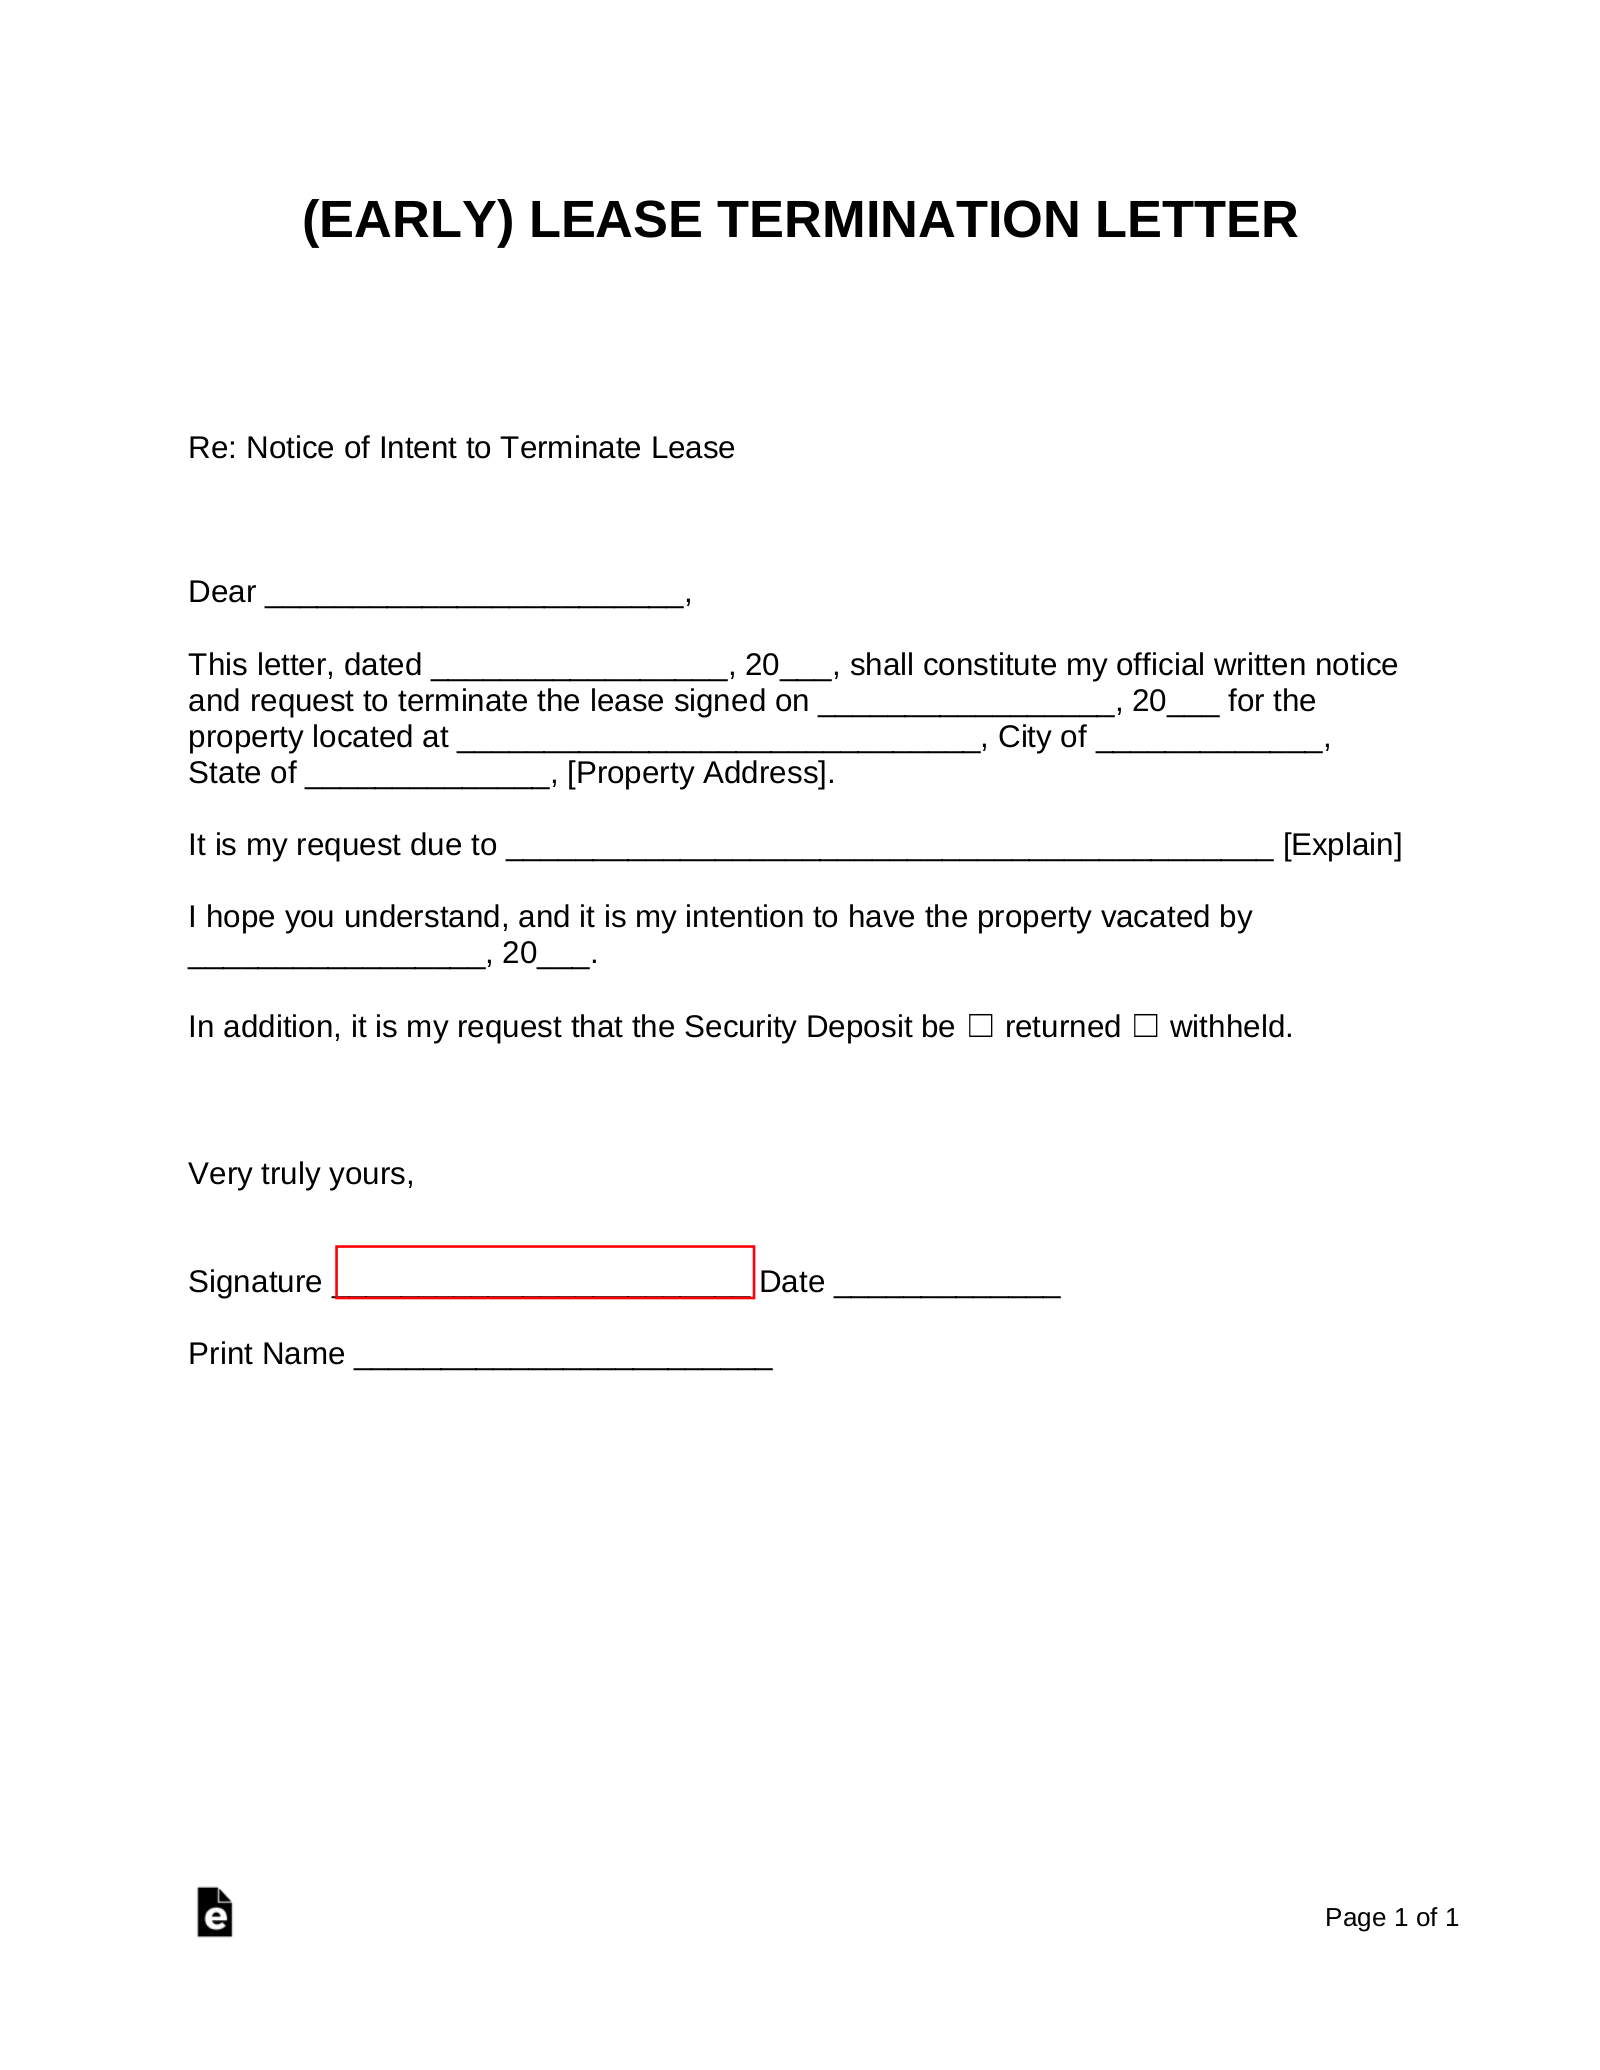 Early Lease Termination Letter | Landlord-Tenant | eForms